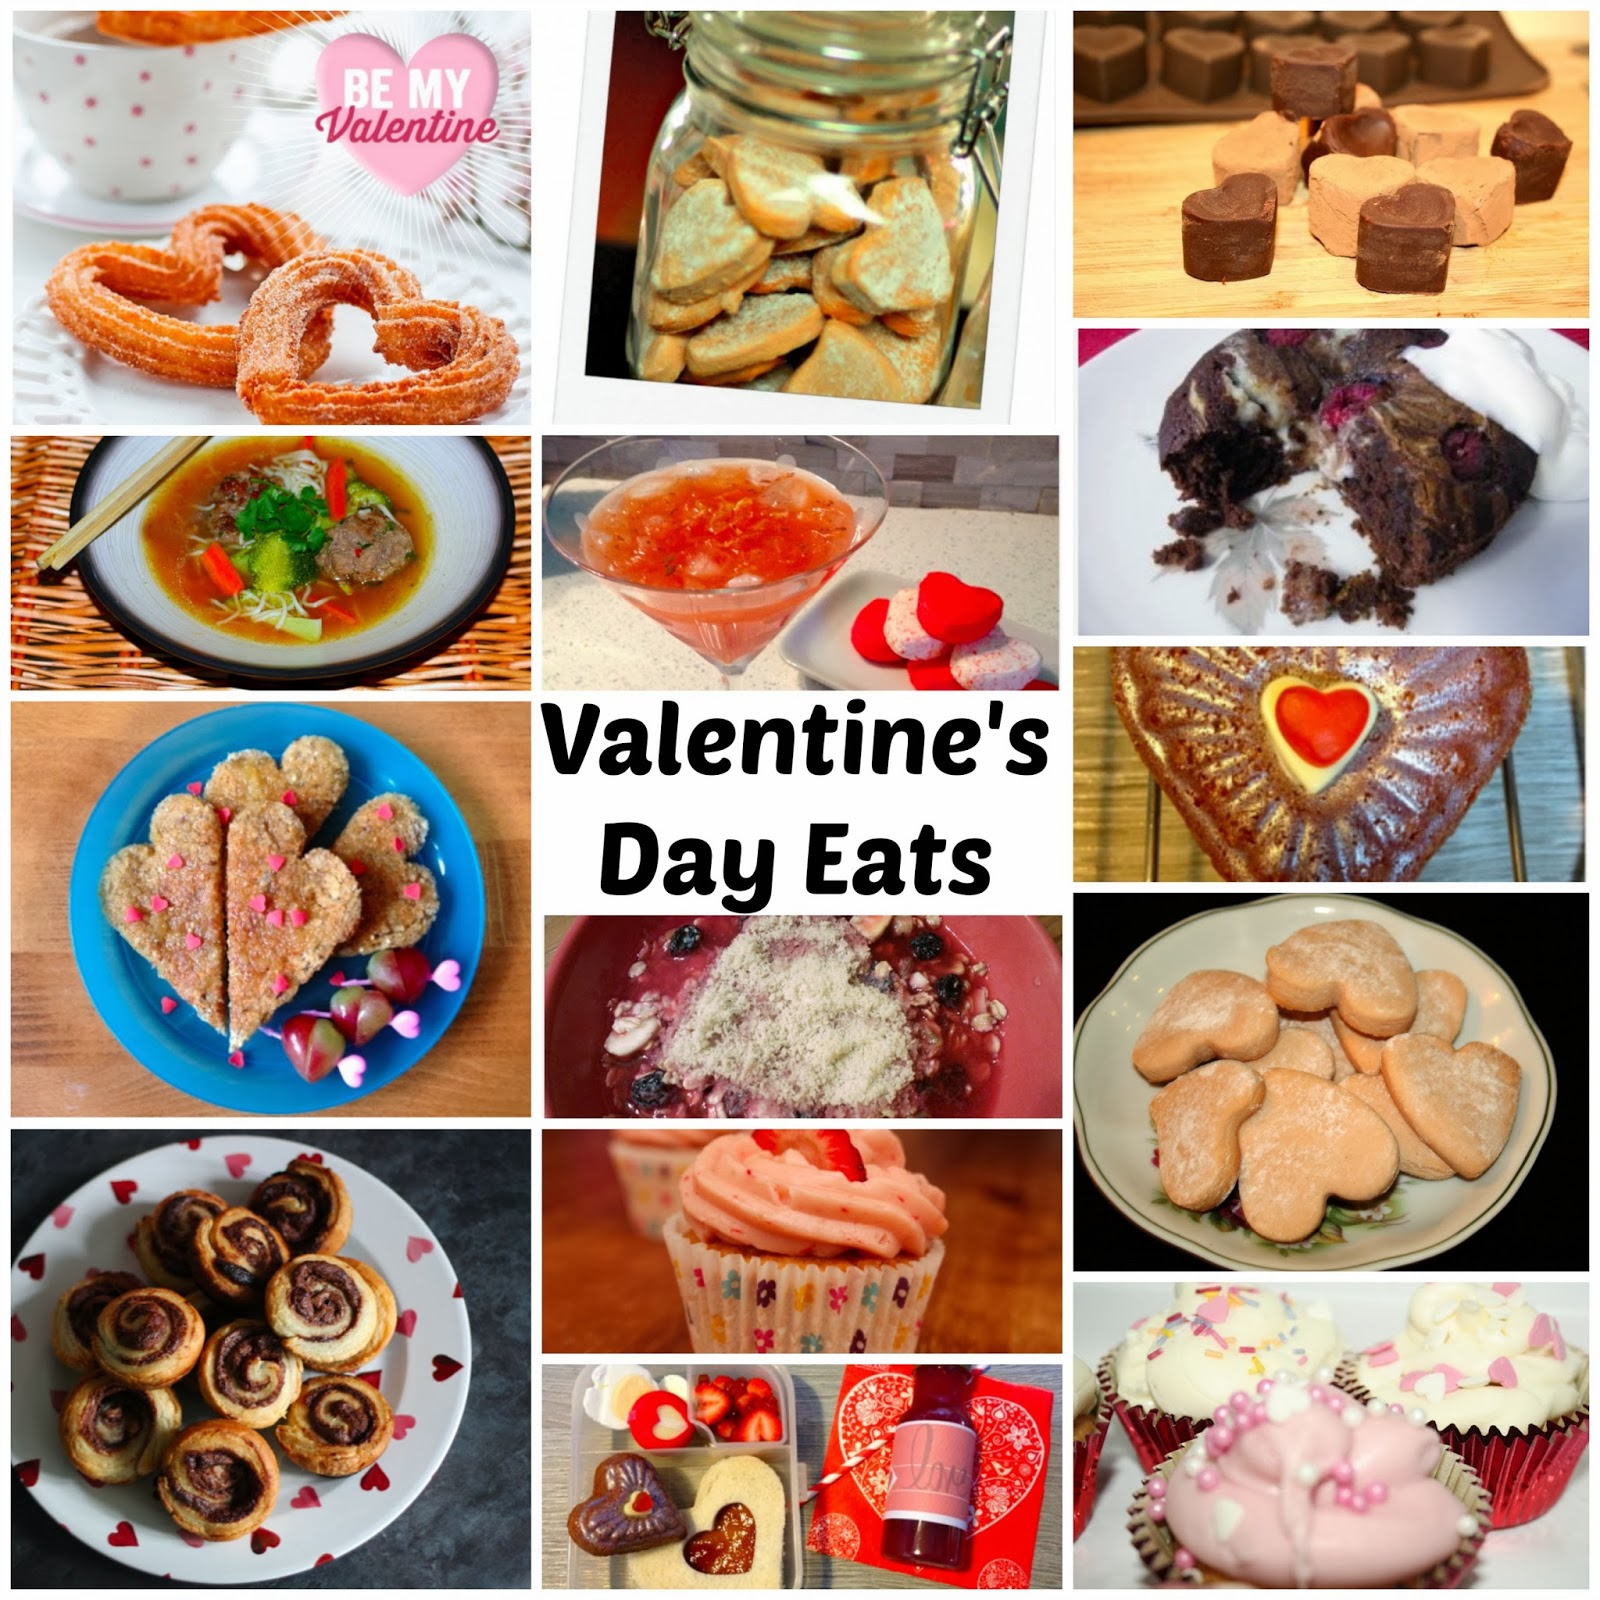 Friday Foodie – Valentine's Day Eats